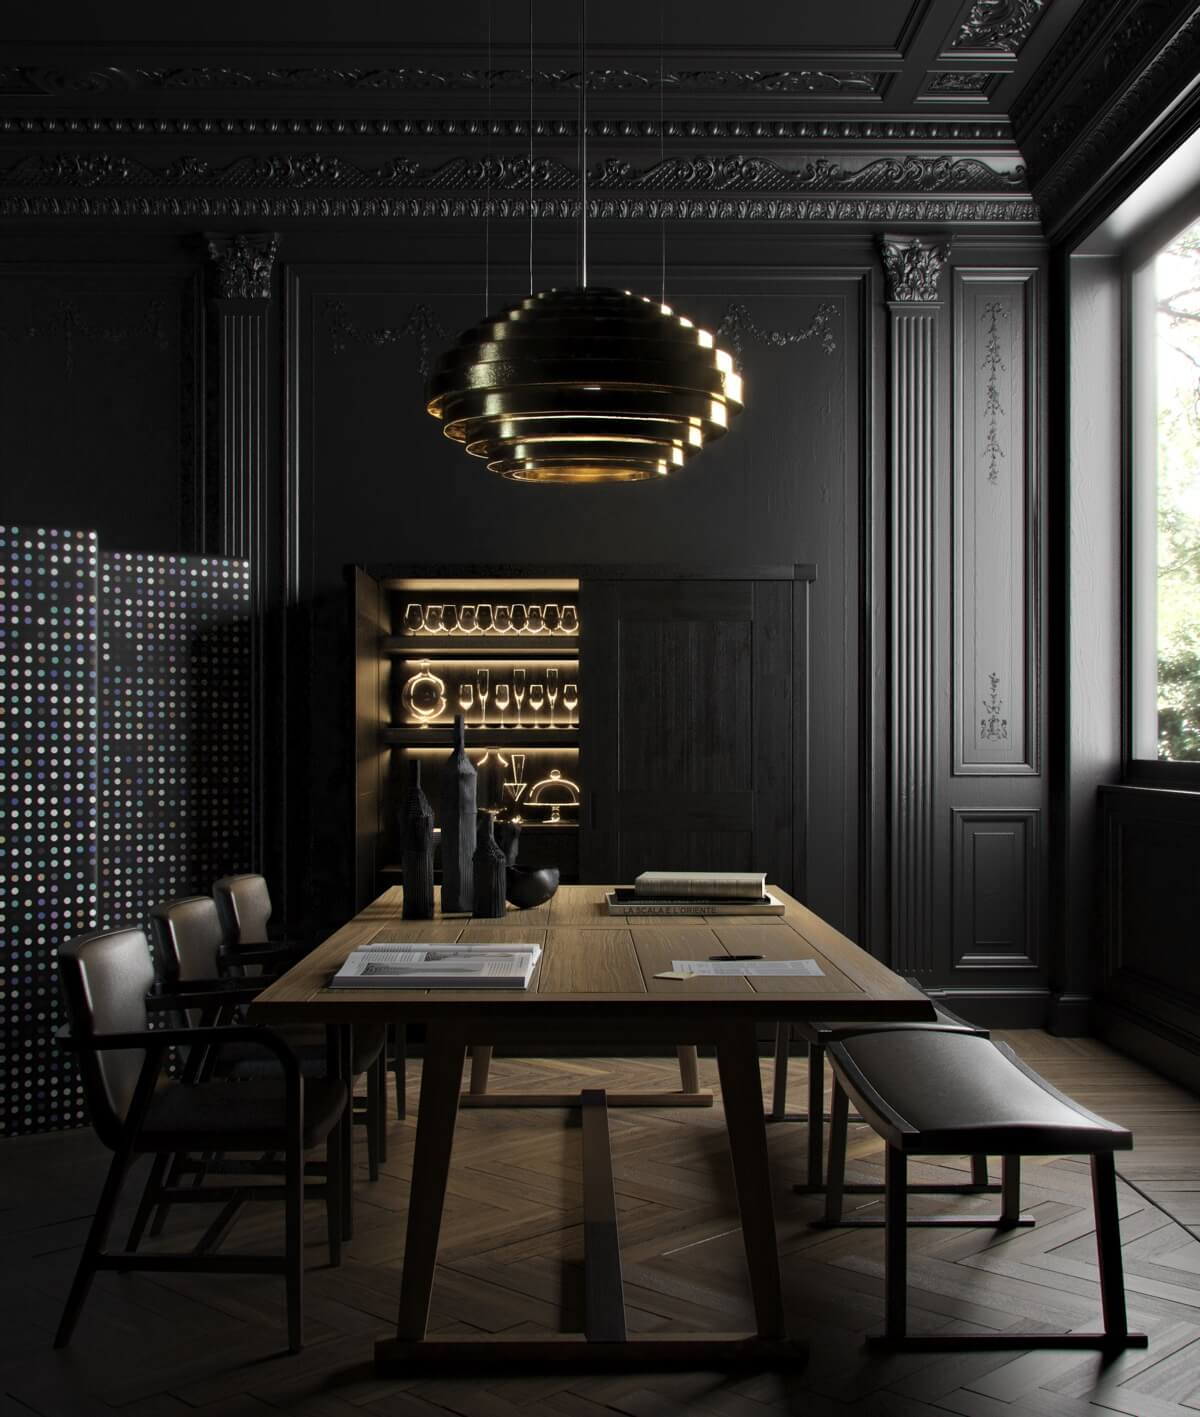 DARK WOOD DINING TABLE WITH GOLD PENDANT LIGHT